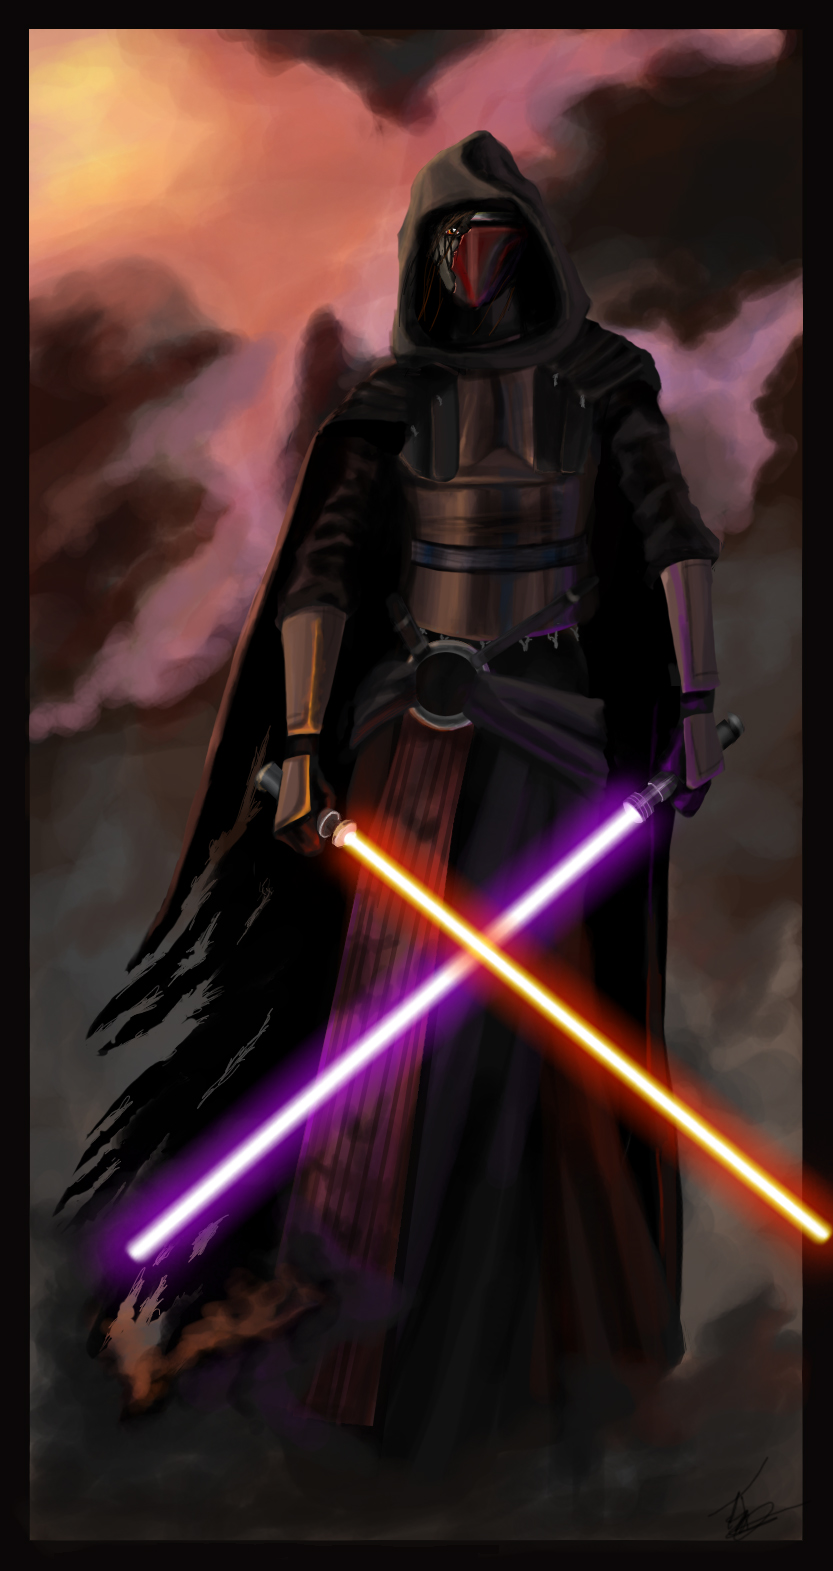 Revan's Return